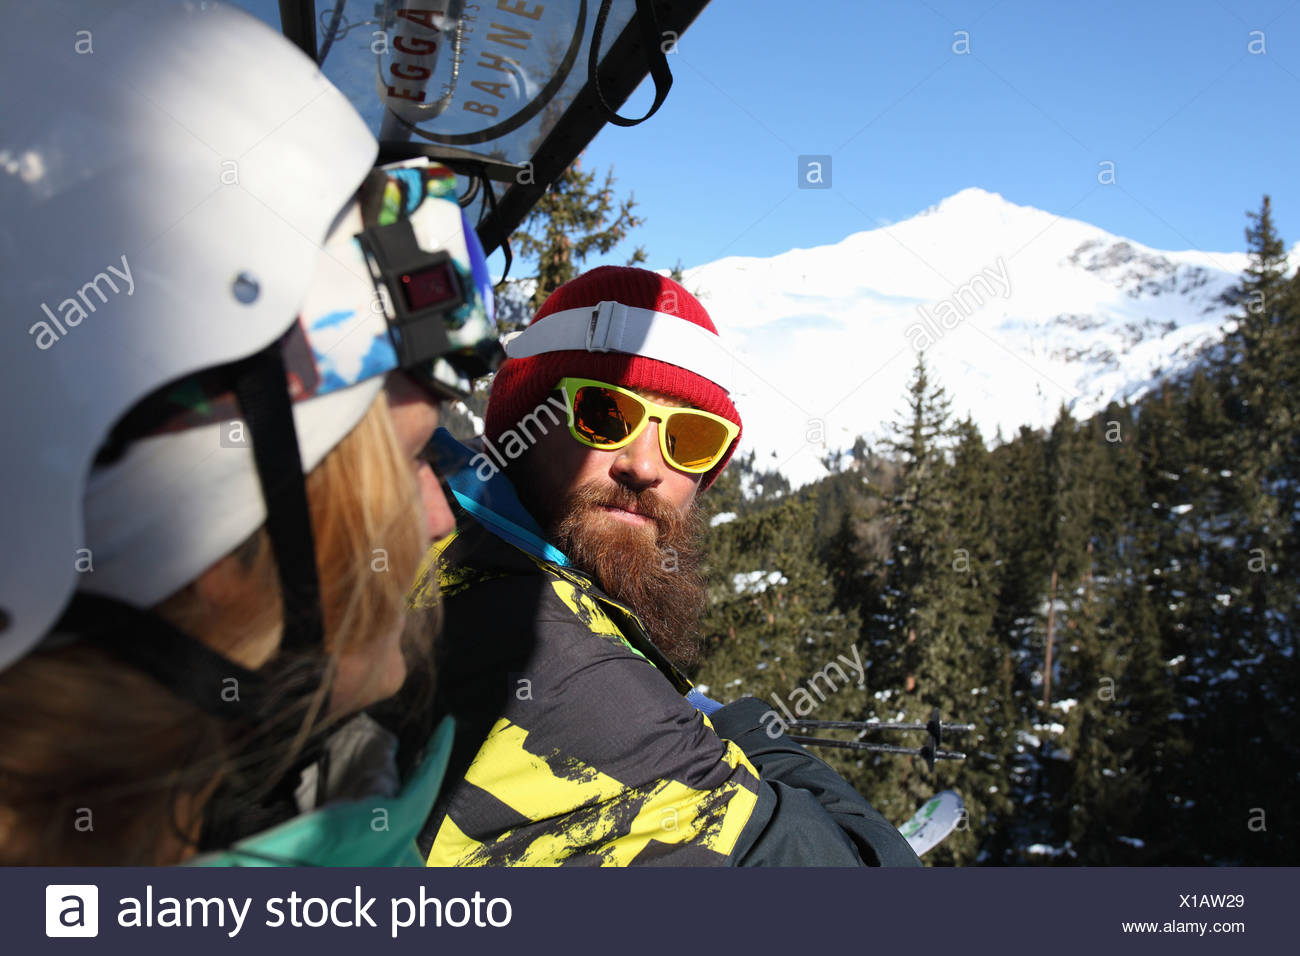 Snowboard and skiing couple on mountain, Mayrhofen, Tyrol, Austria - Stock Image